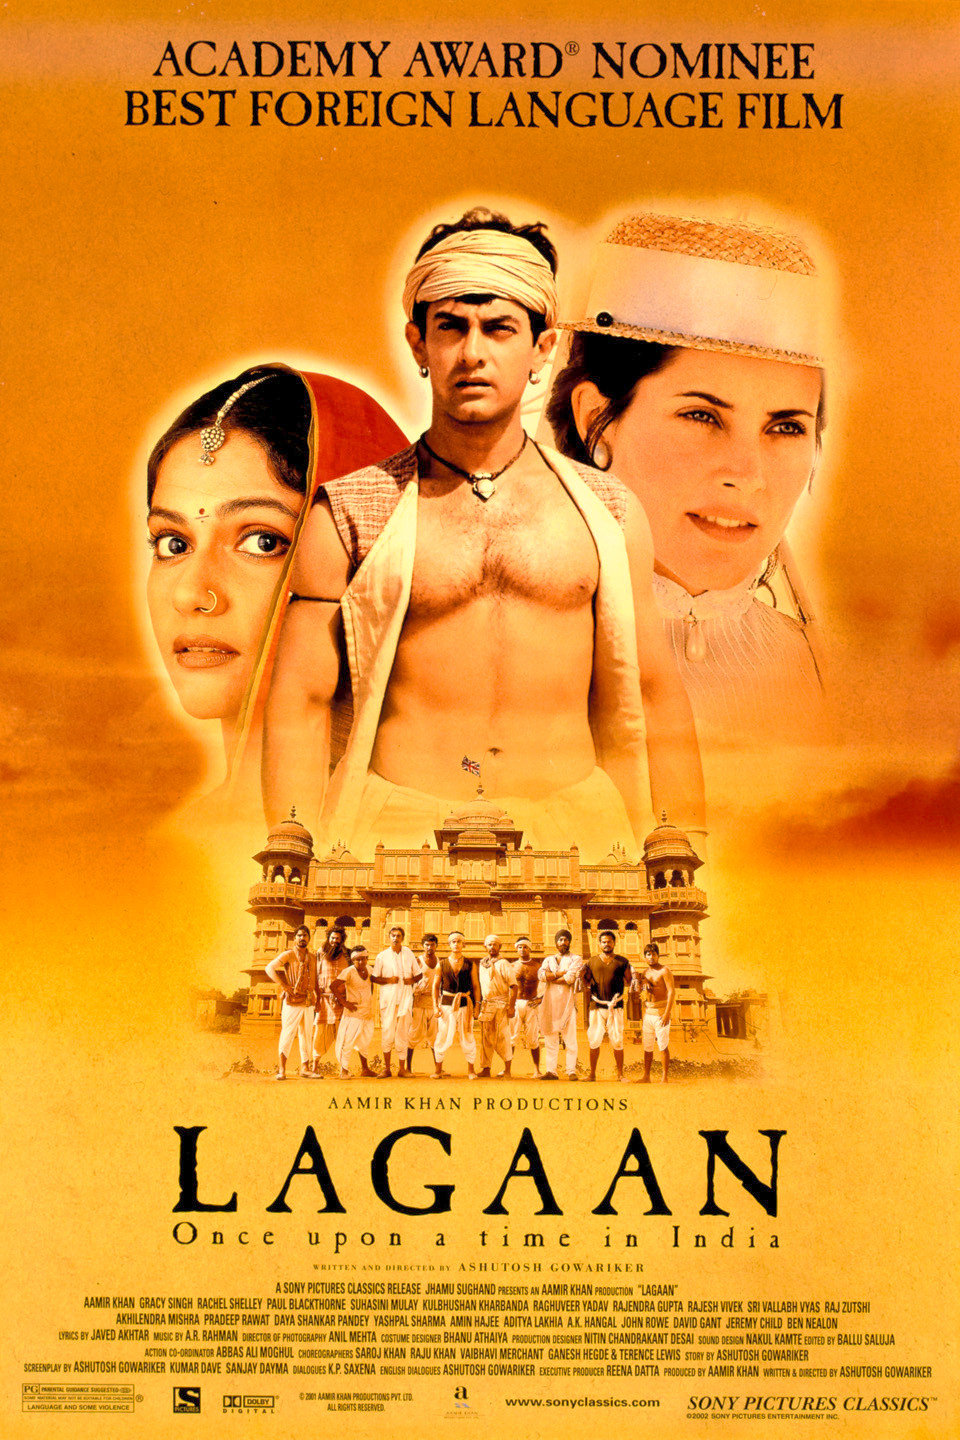 Lagaan Movie Poster HD By Aamir Khan and Gracy Singh